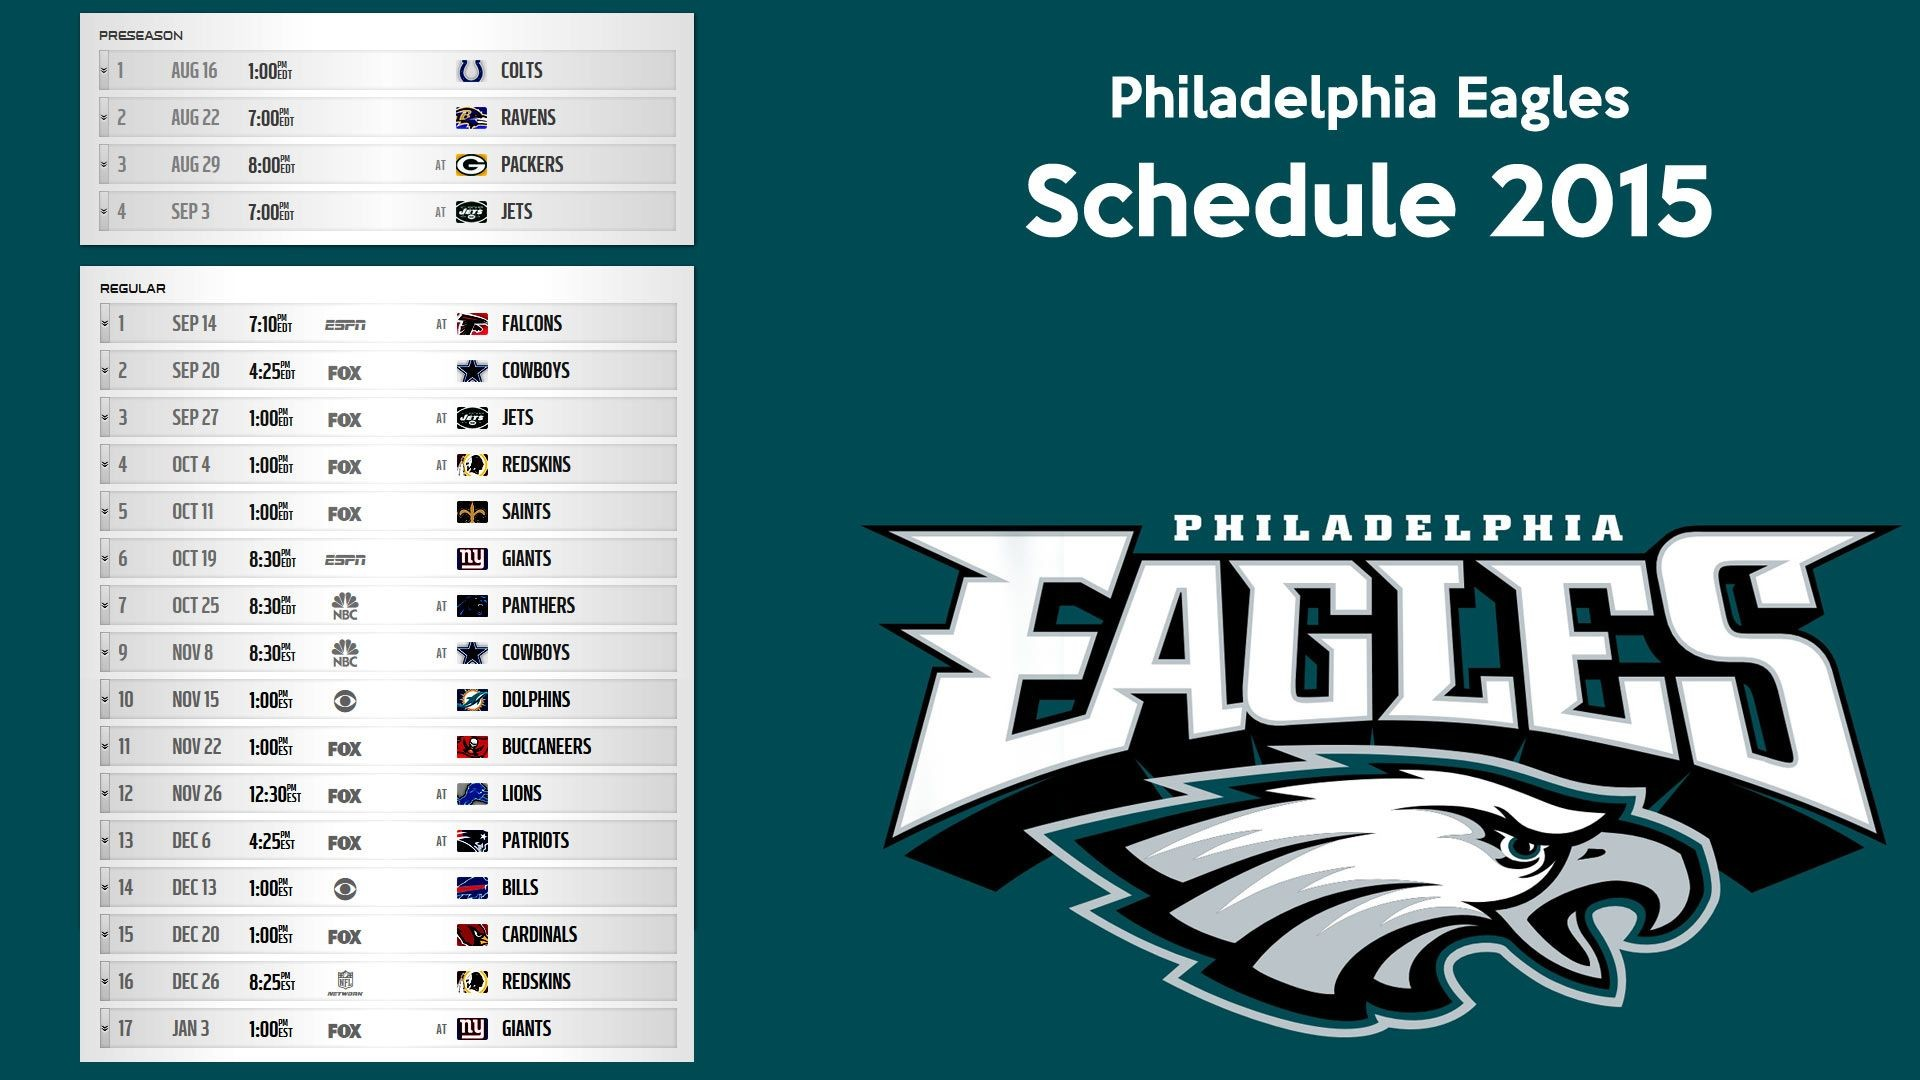 1920x1080 Philadelphia Eagles schedule 2015 wallpaper – Free full hd .